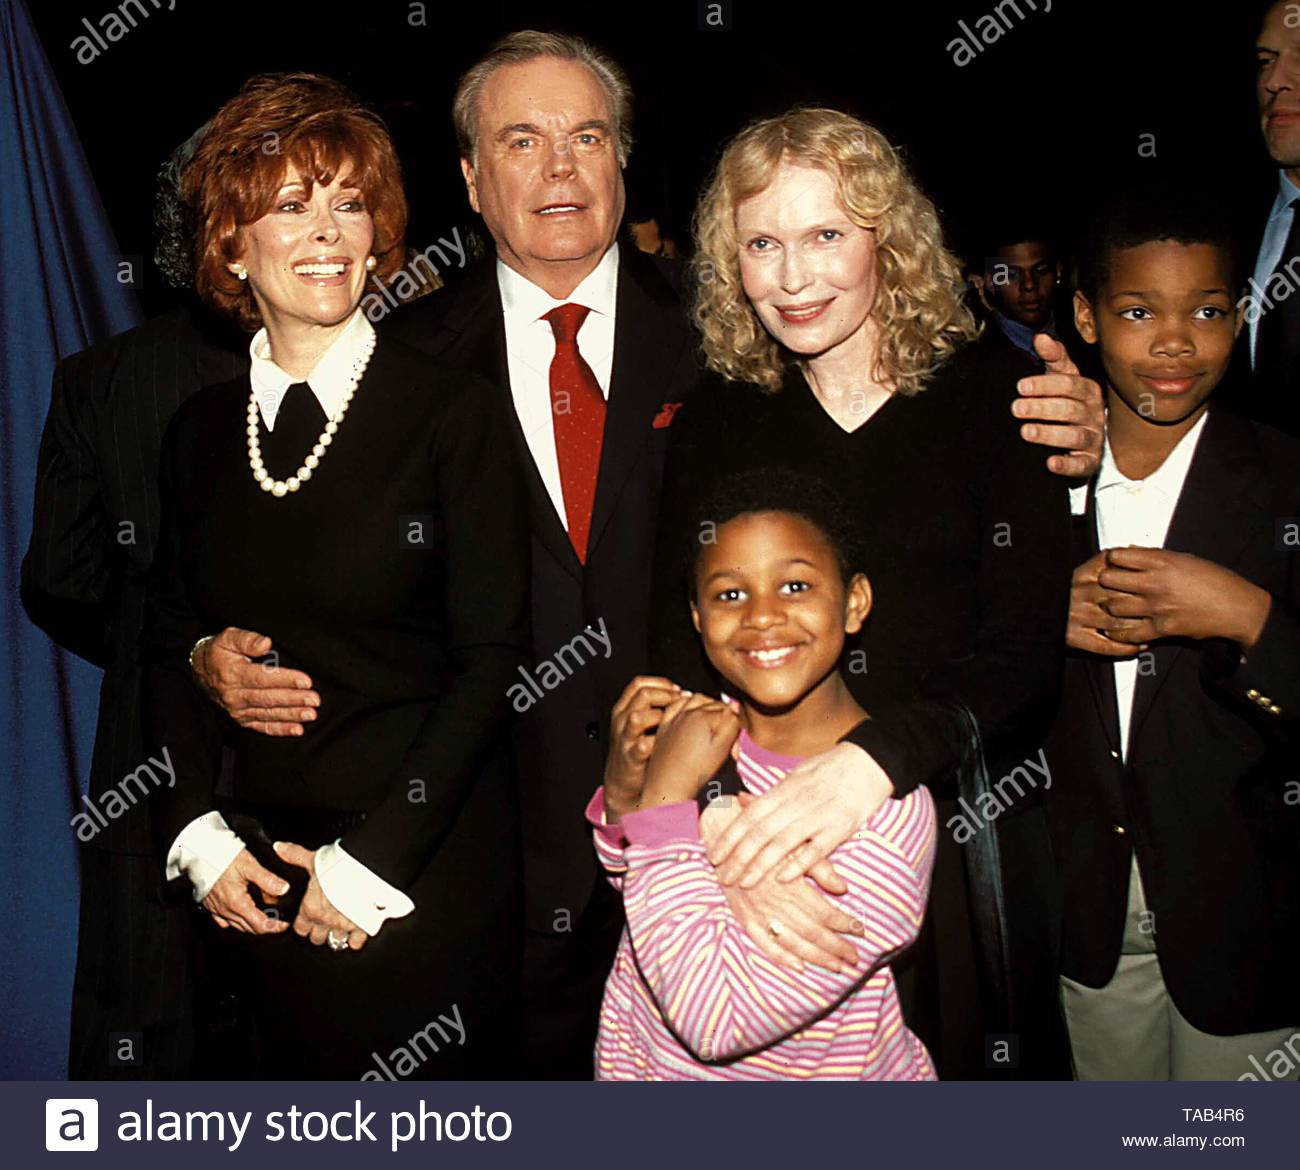 Jill St John And Robert Wagner High Resolution Stock Photography And Images Alamy